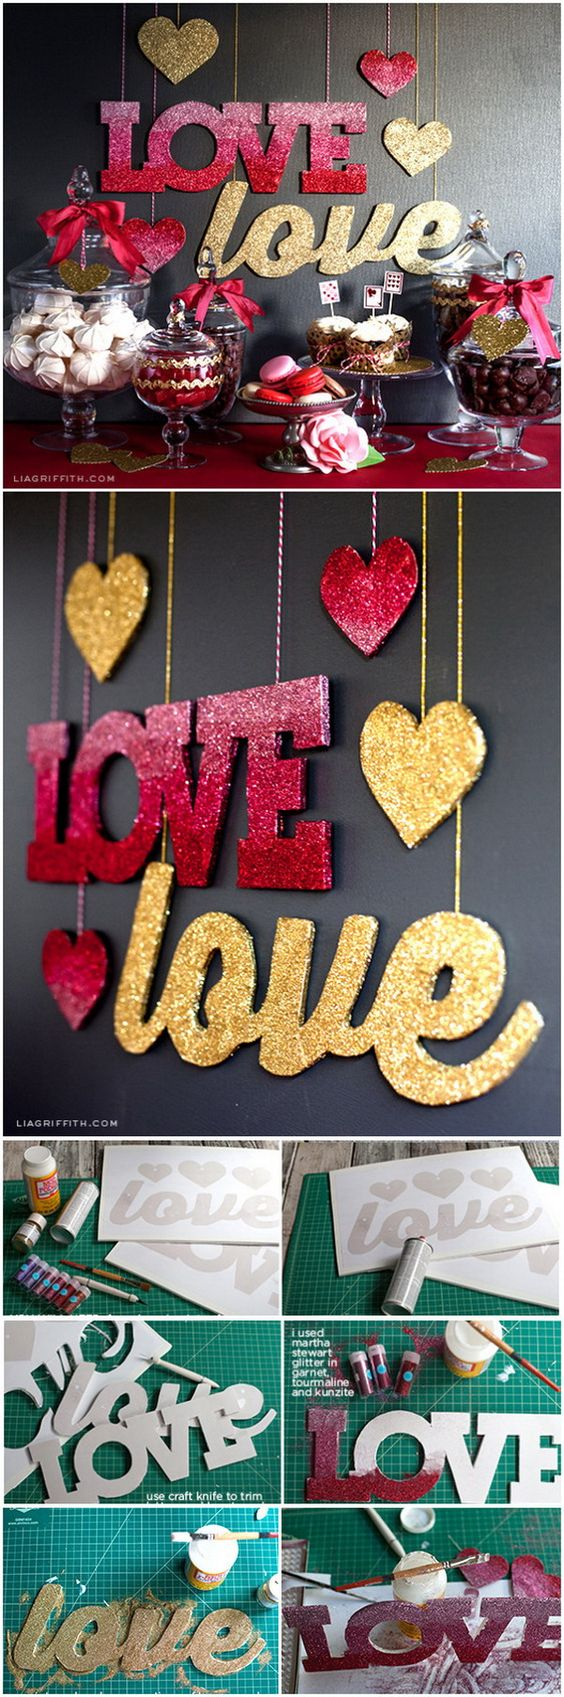 DIY Love Banners in Pink Ombré and Gold Glitter.